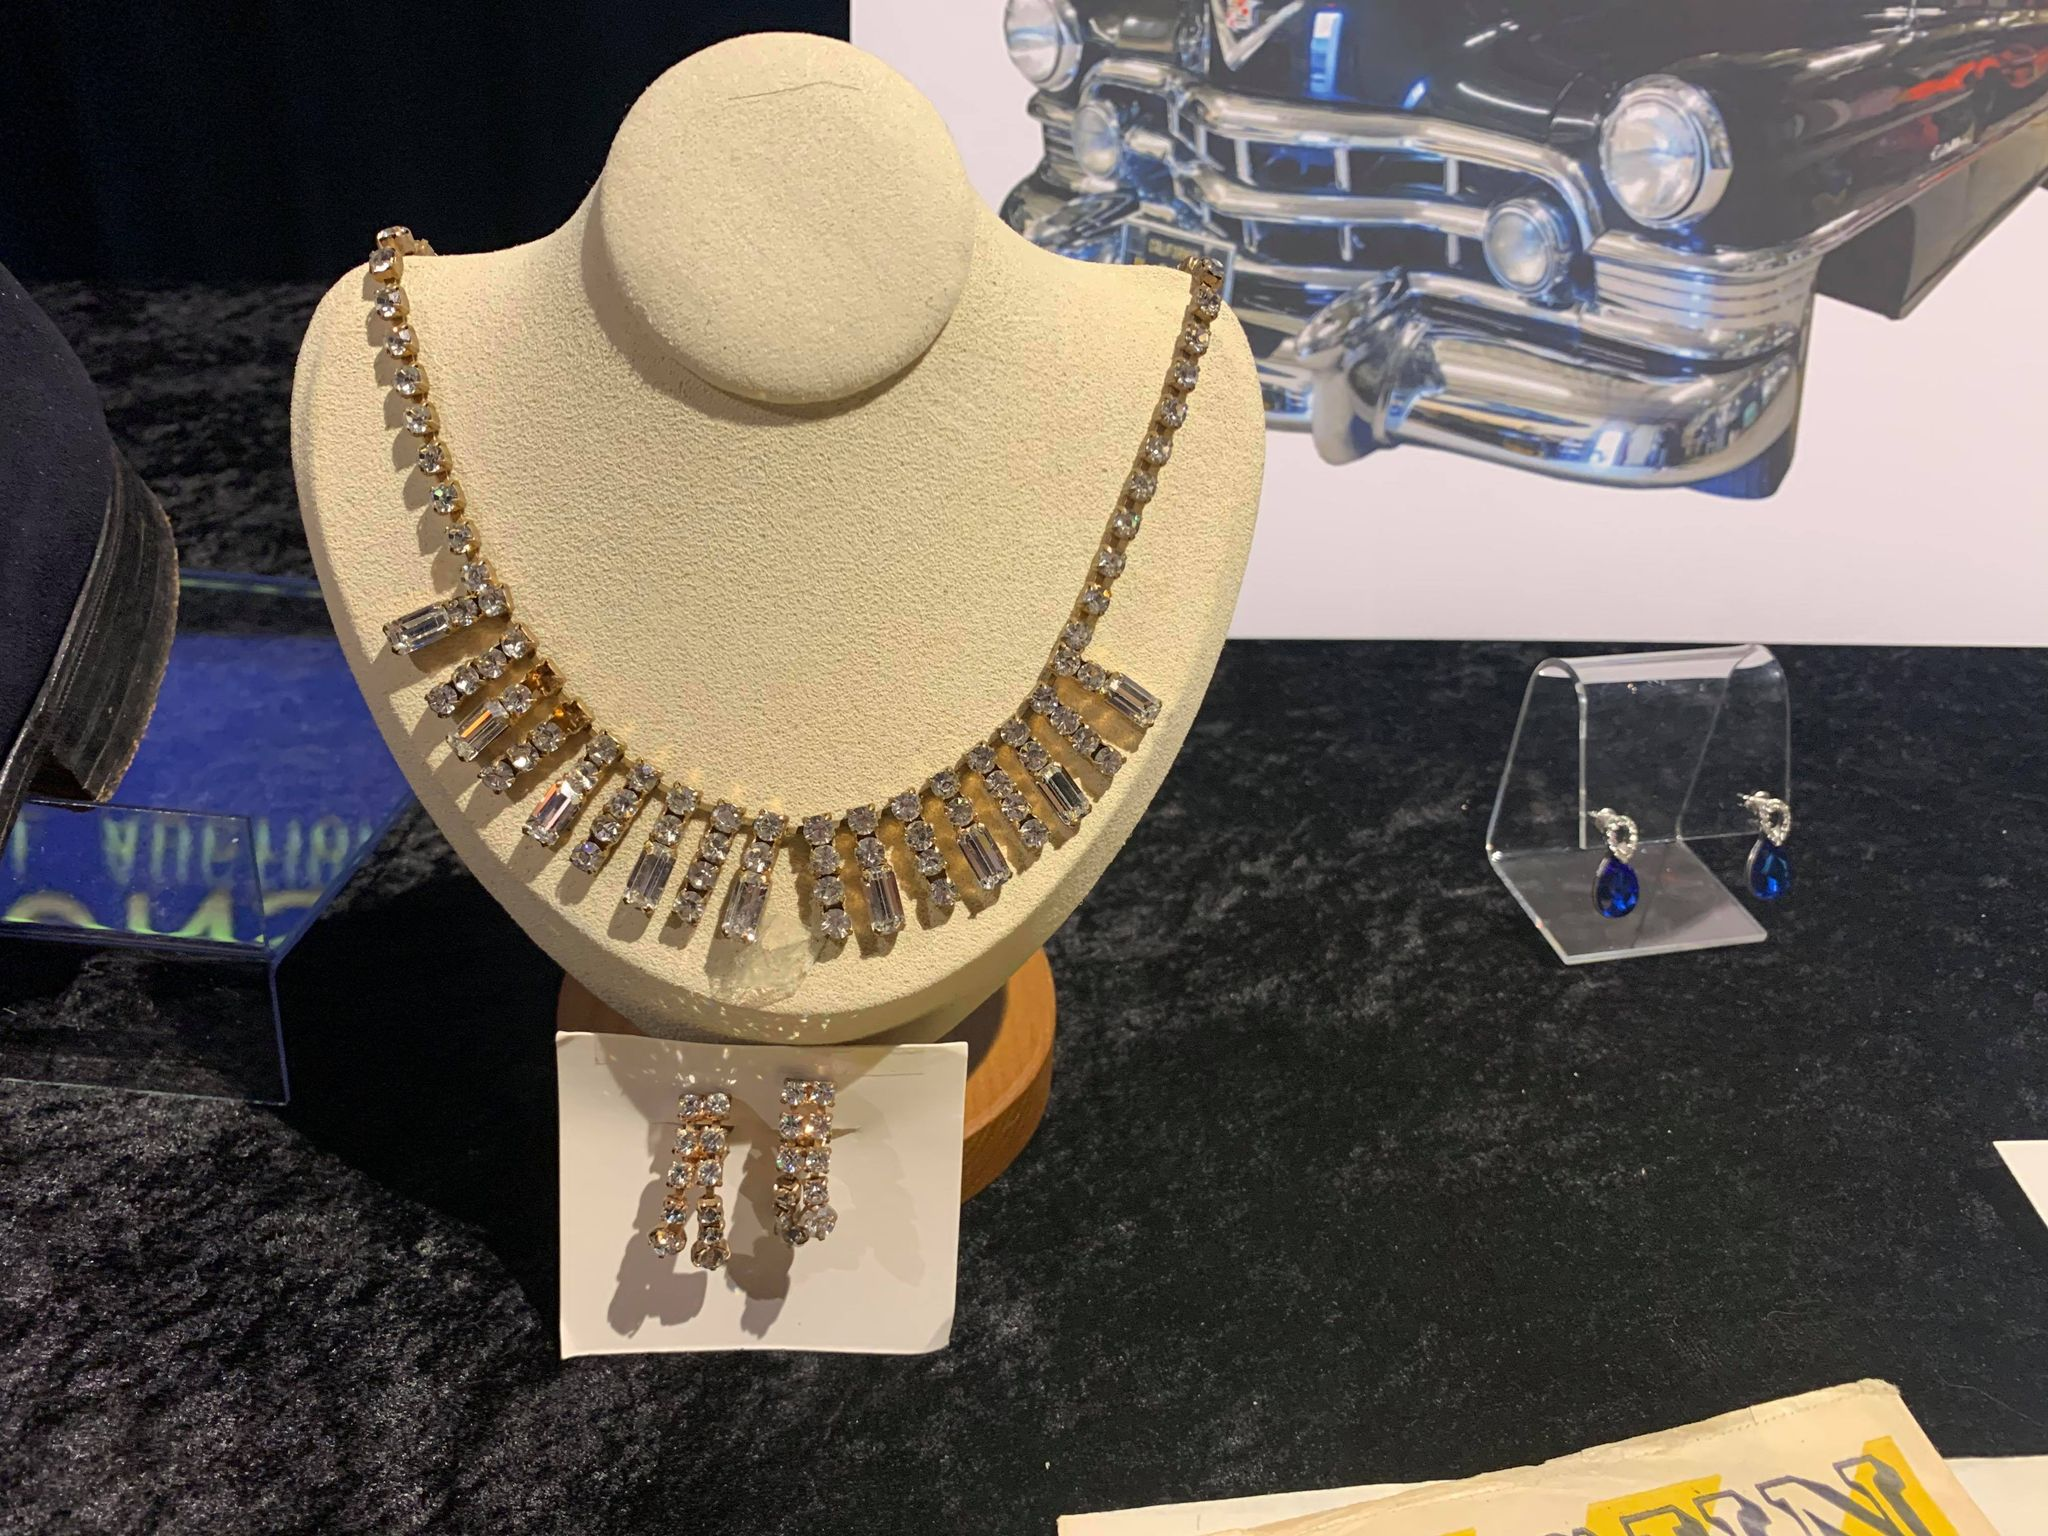 Kruse GWS Auctions: Marilyn Monroe necklace, Elizabeth Taylor blue drop earrings